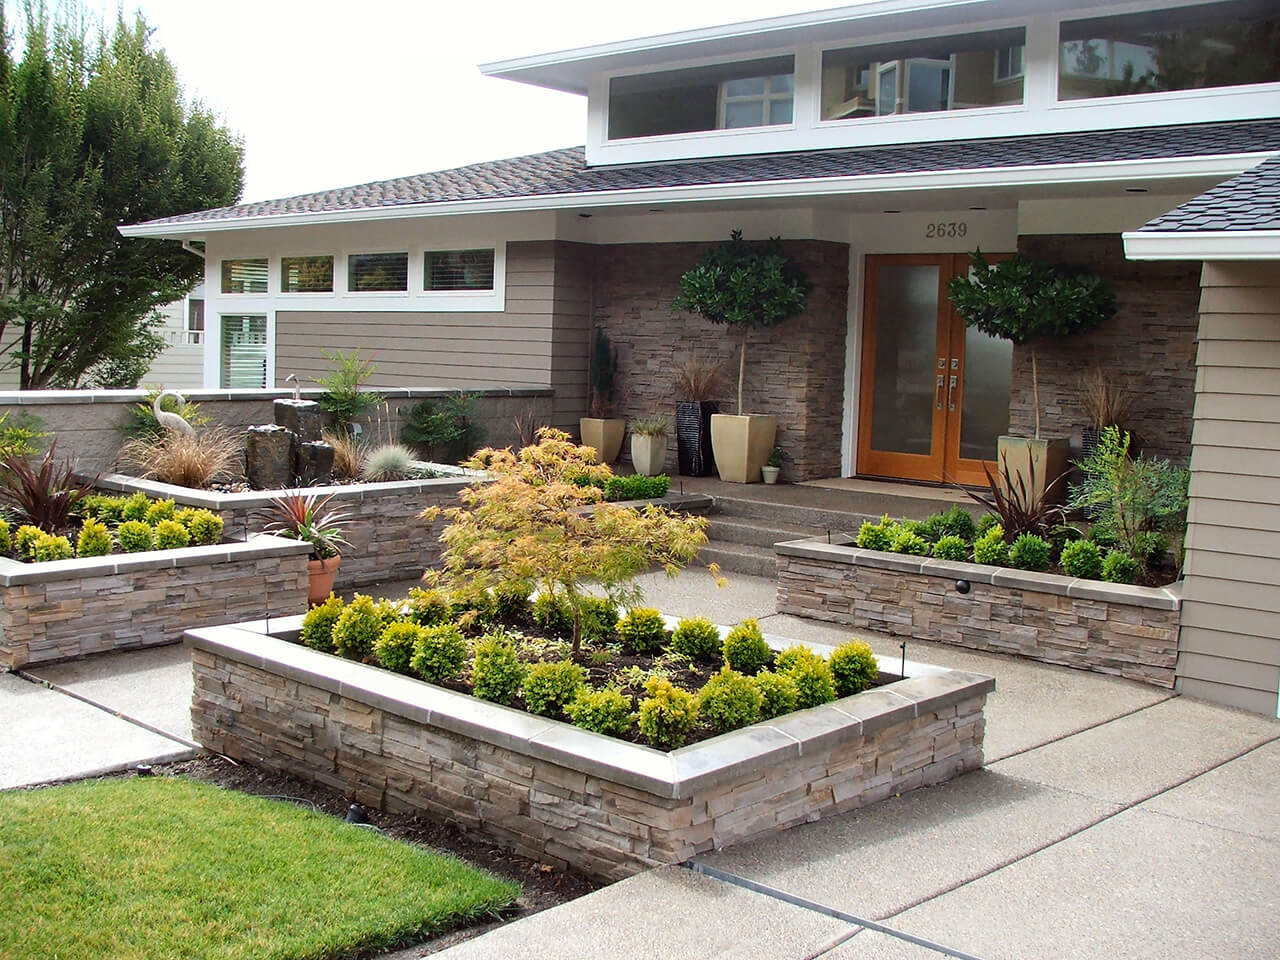 20 brilliant front garden landscaping ideas style motivation for Backyard landscaping ideas